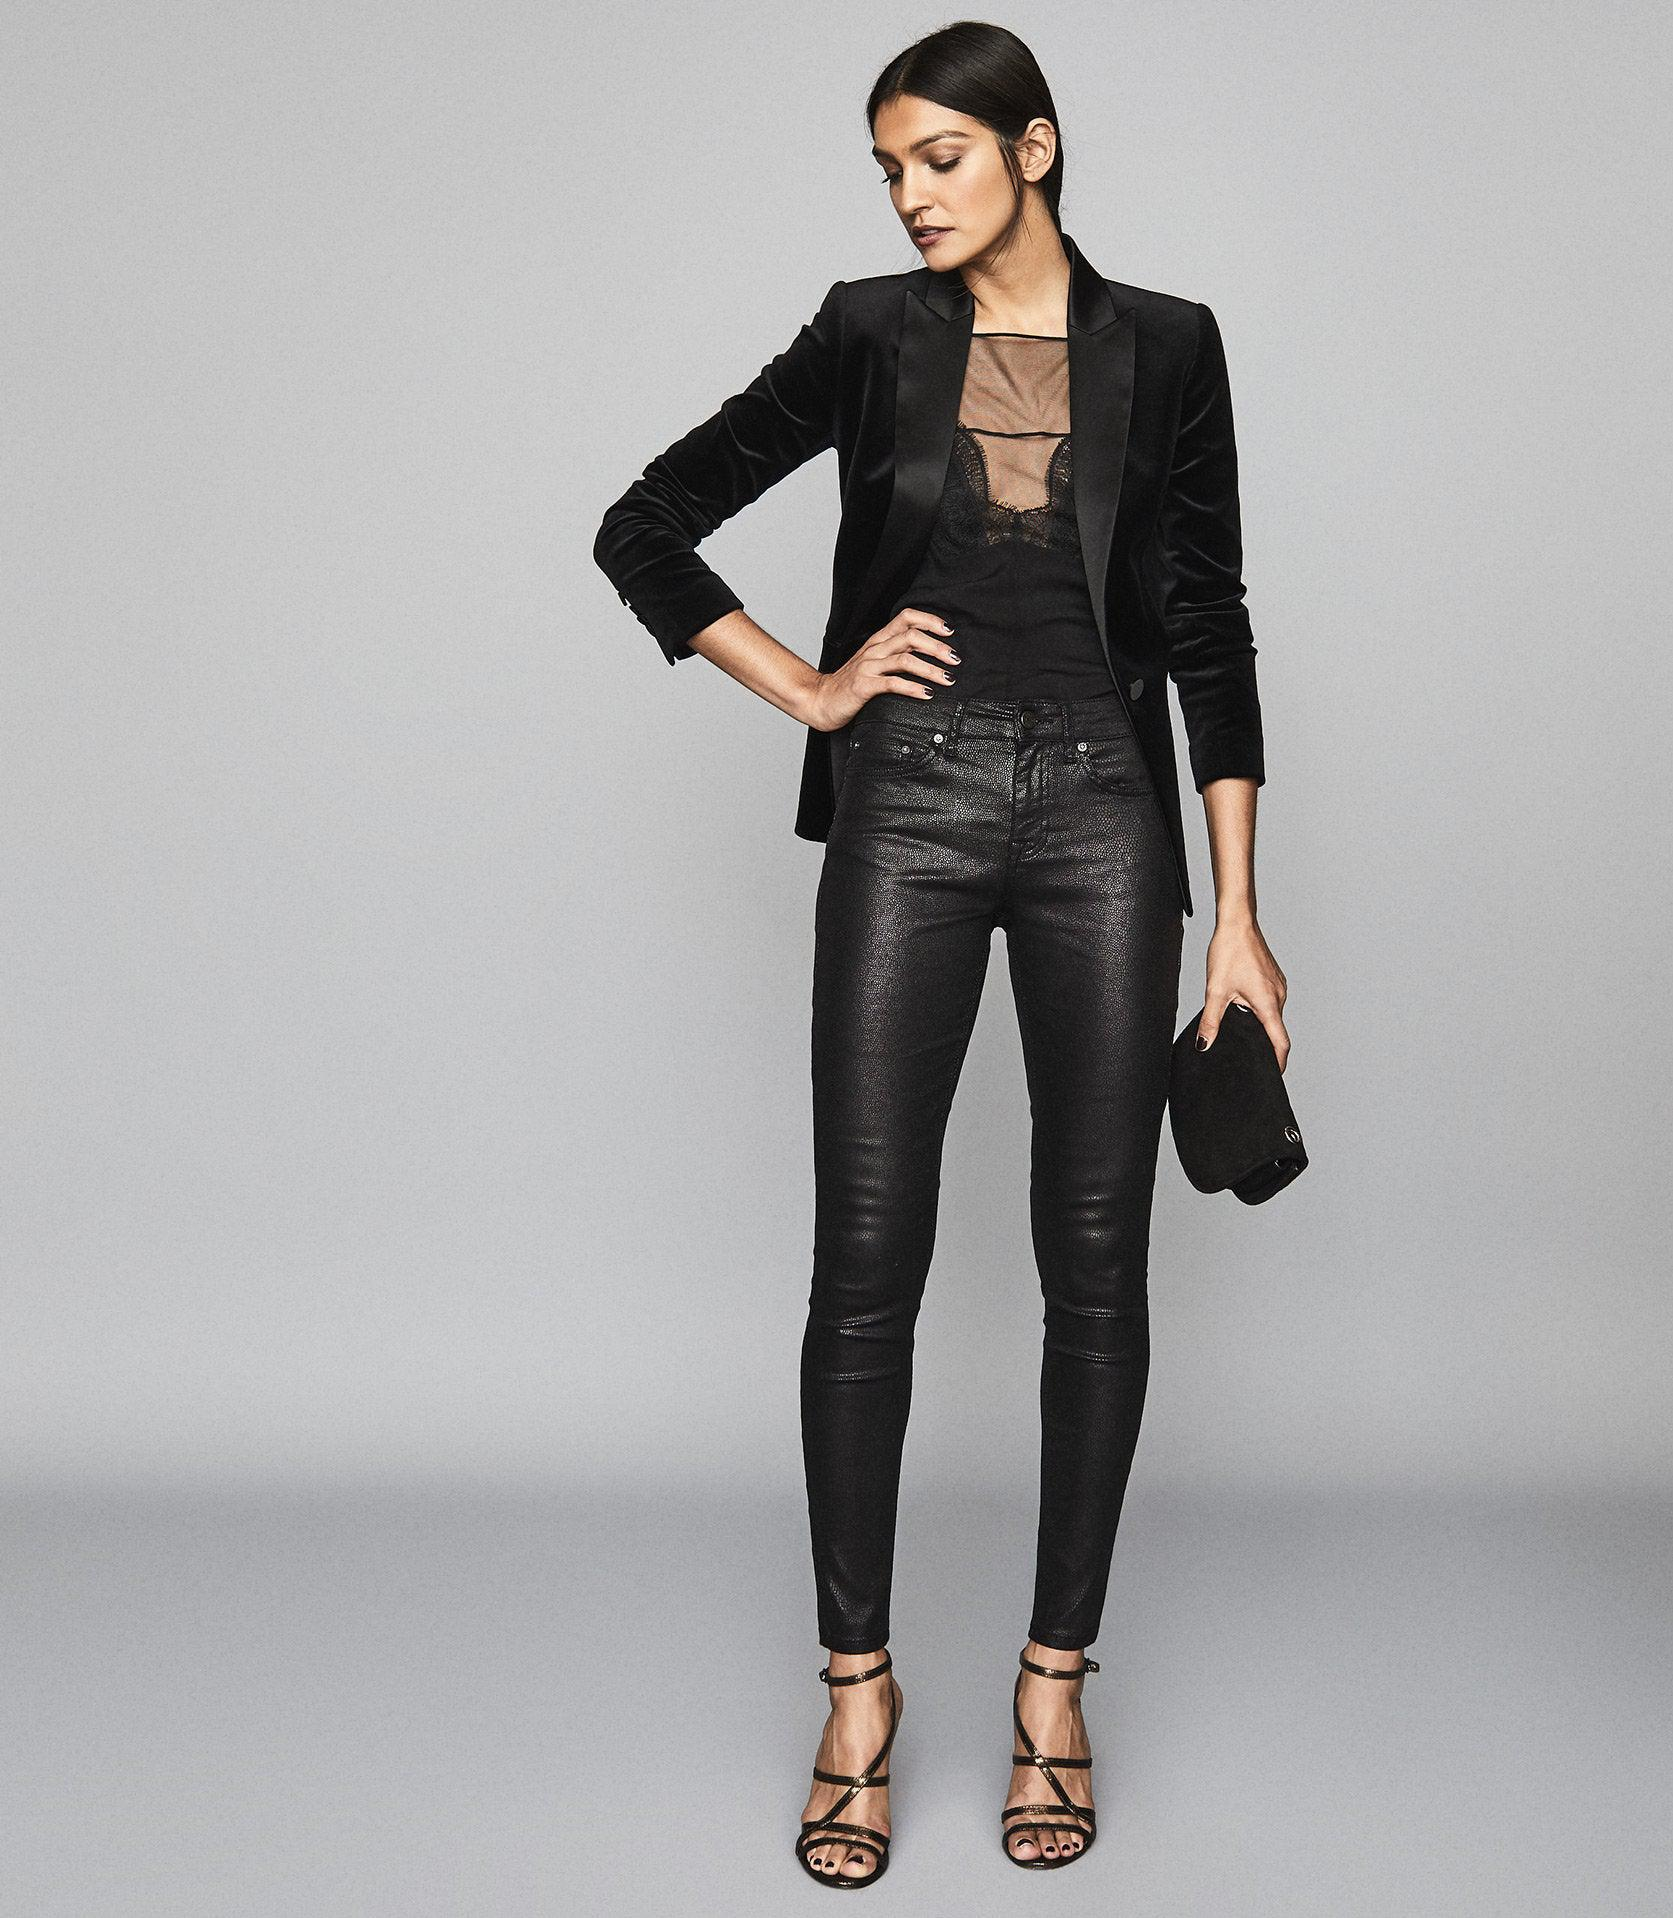 LUX SNAKE COATED - COATED MID RISE SKINNY JEANS